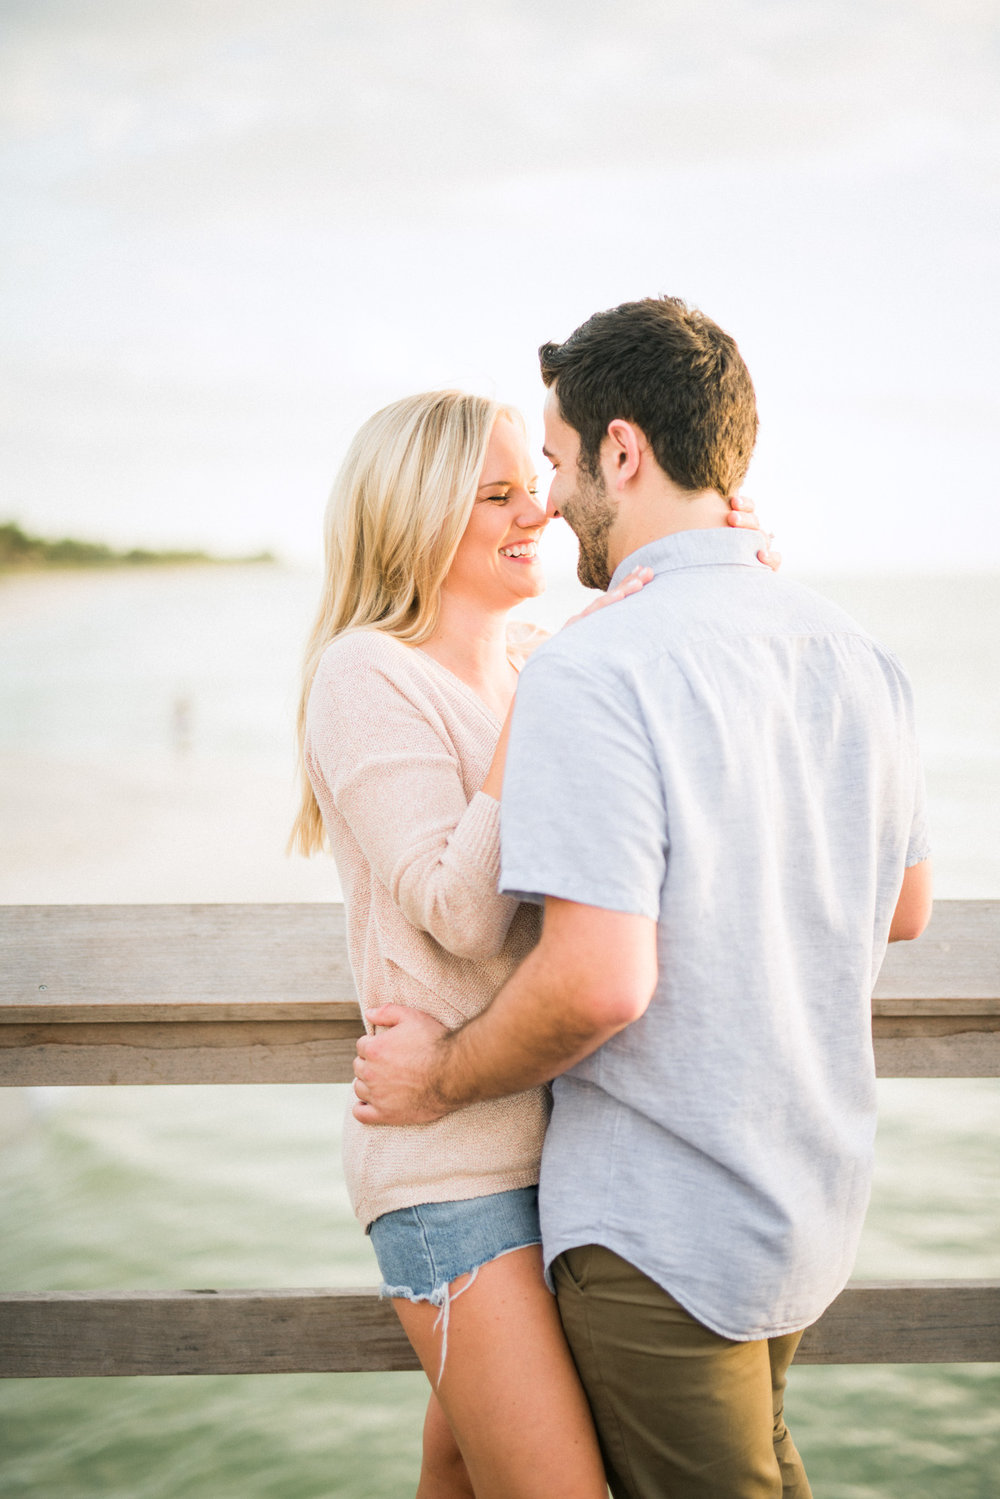 naples-florida-beach-engagement-hunter-ryan-photo-naples-weddings-02805.jpg